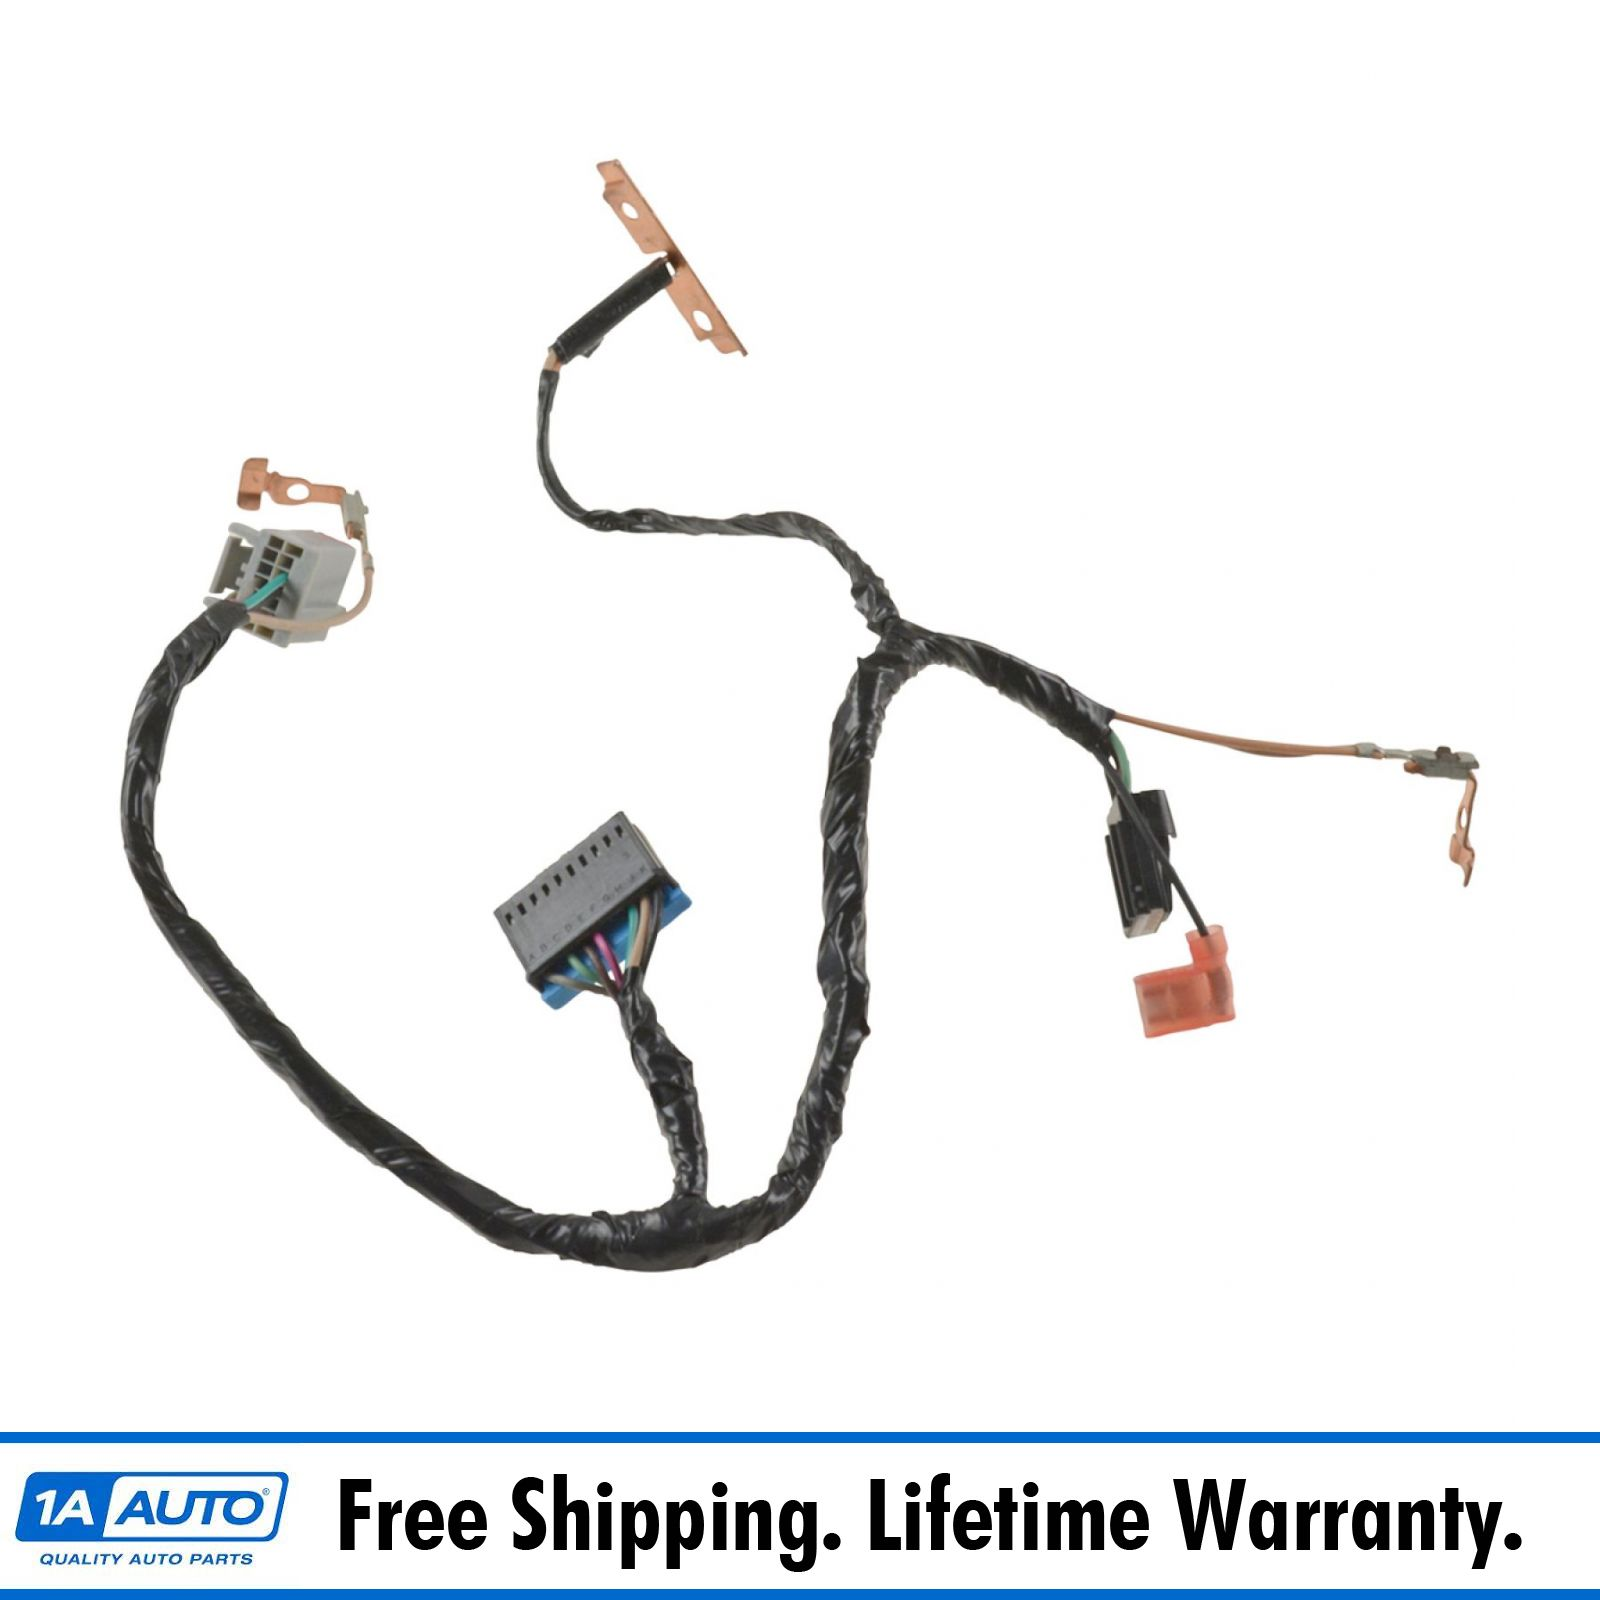 OEM 25776048 Audio Radio Steering Wheel Wiring Harness for Chevy GMC on gm alternator harness, radio harness, gm wiring alternator, obd2 to obd1 jumper harness, gm wiring connectors, gm wiring gauge,